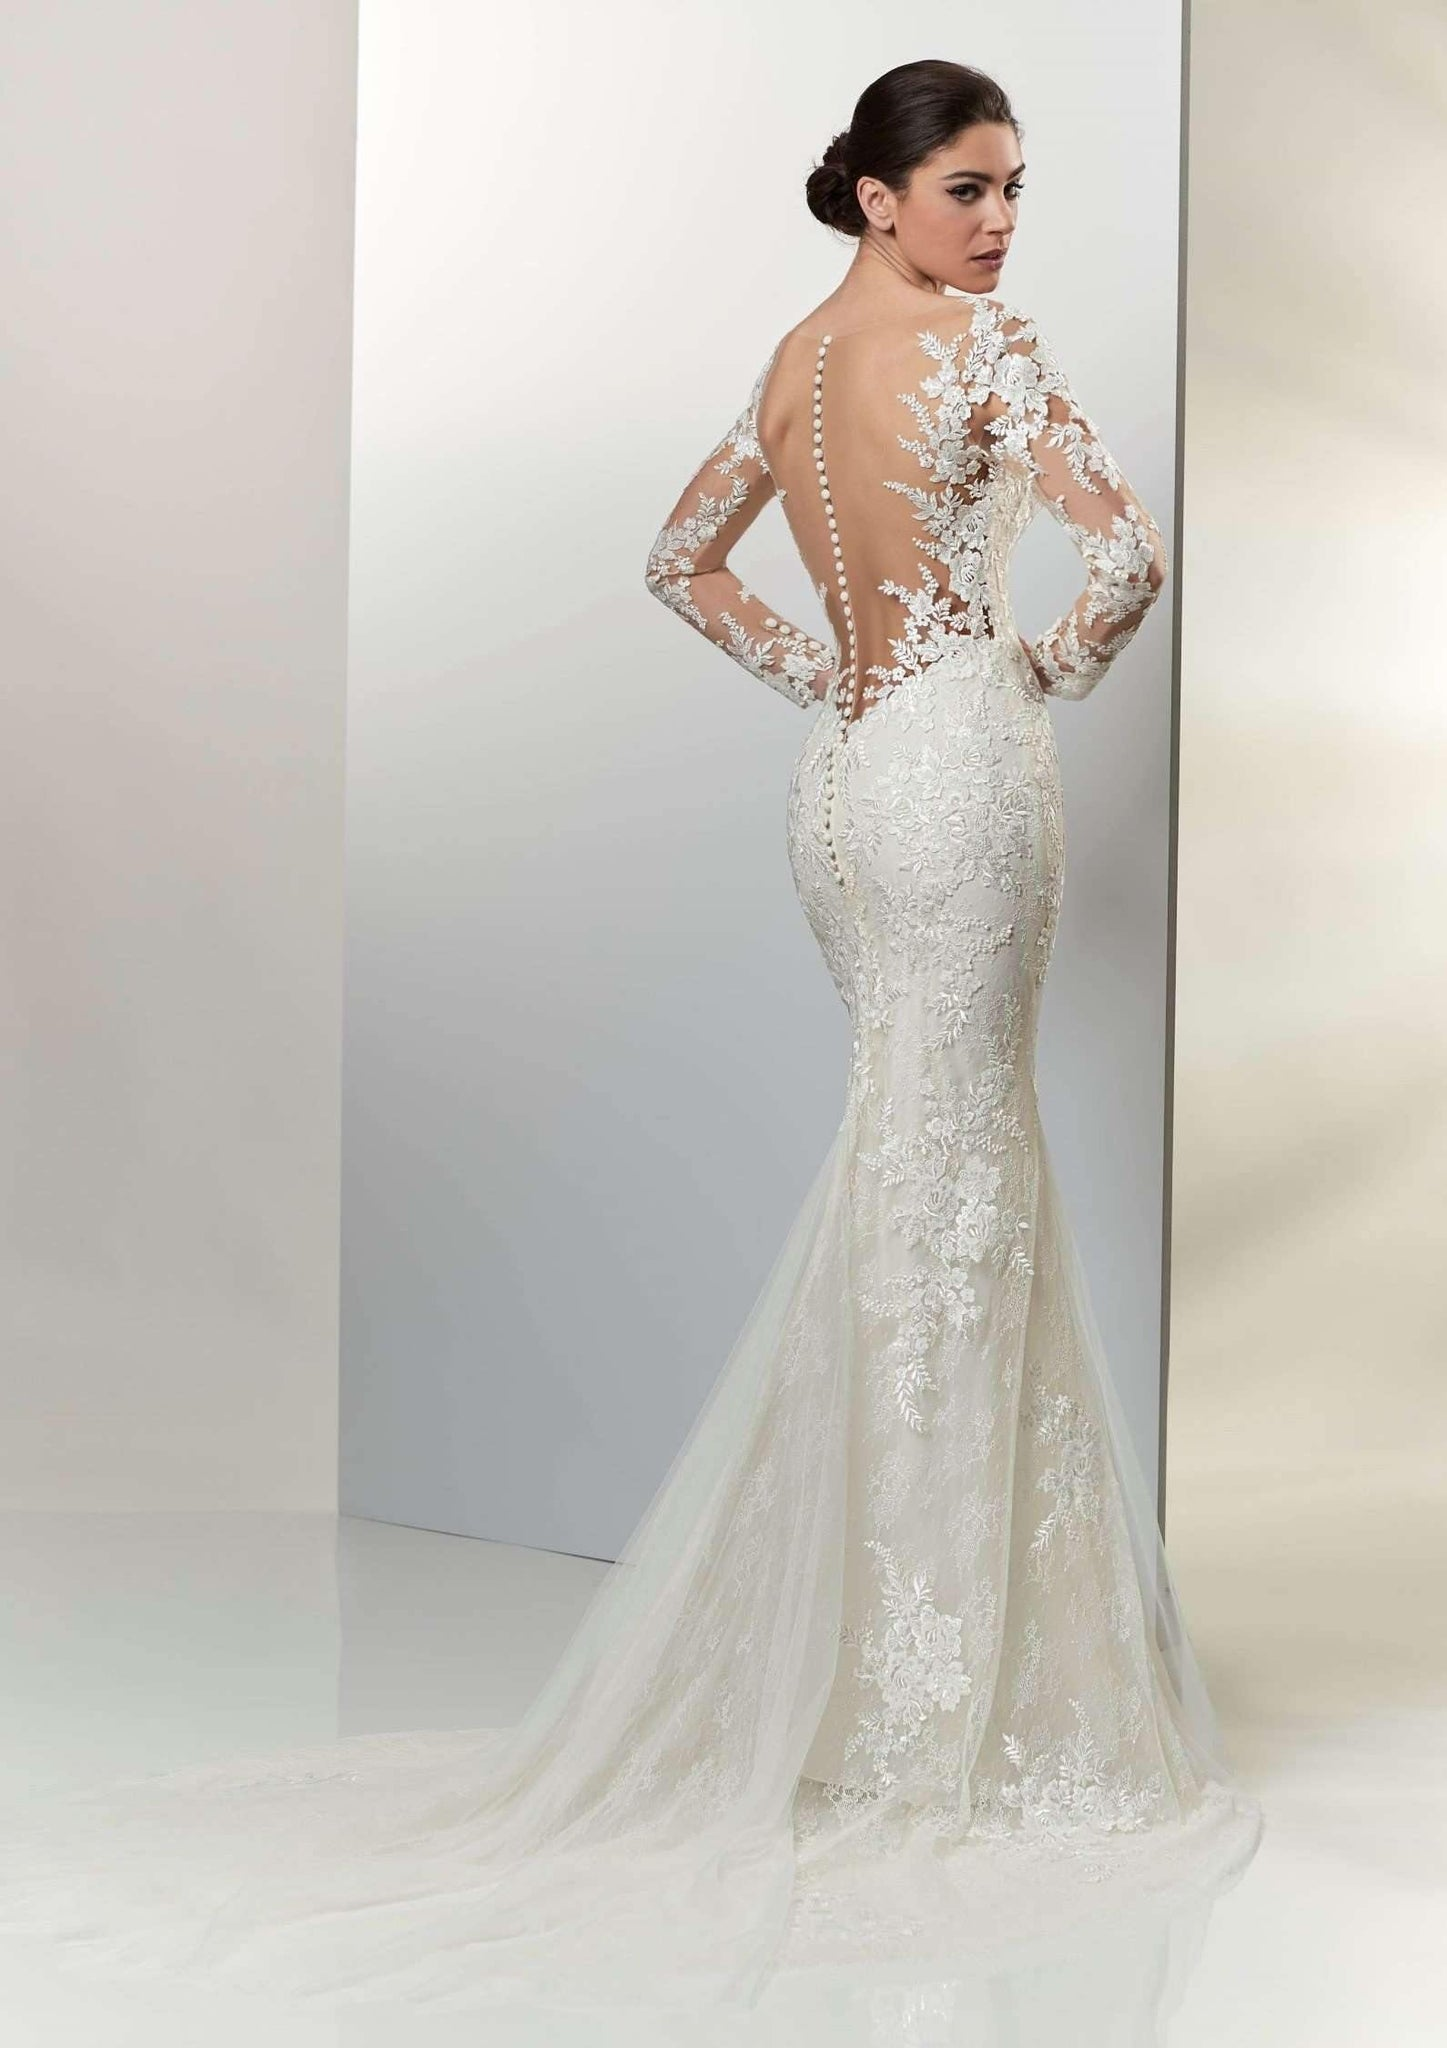 VENUS BRIDAL - Angelica - Adore Bridal and Occasion Wear